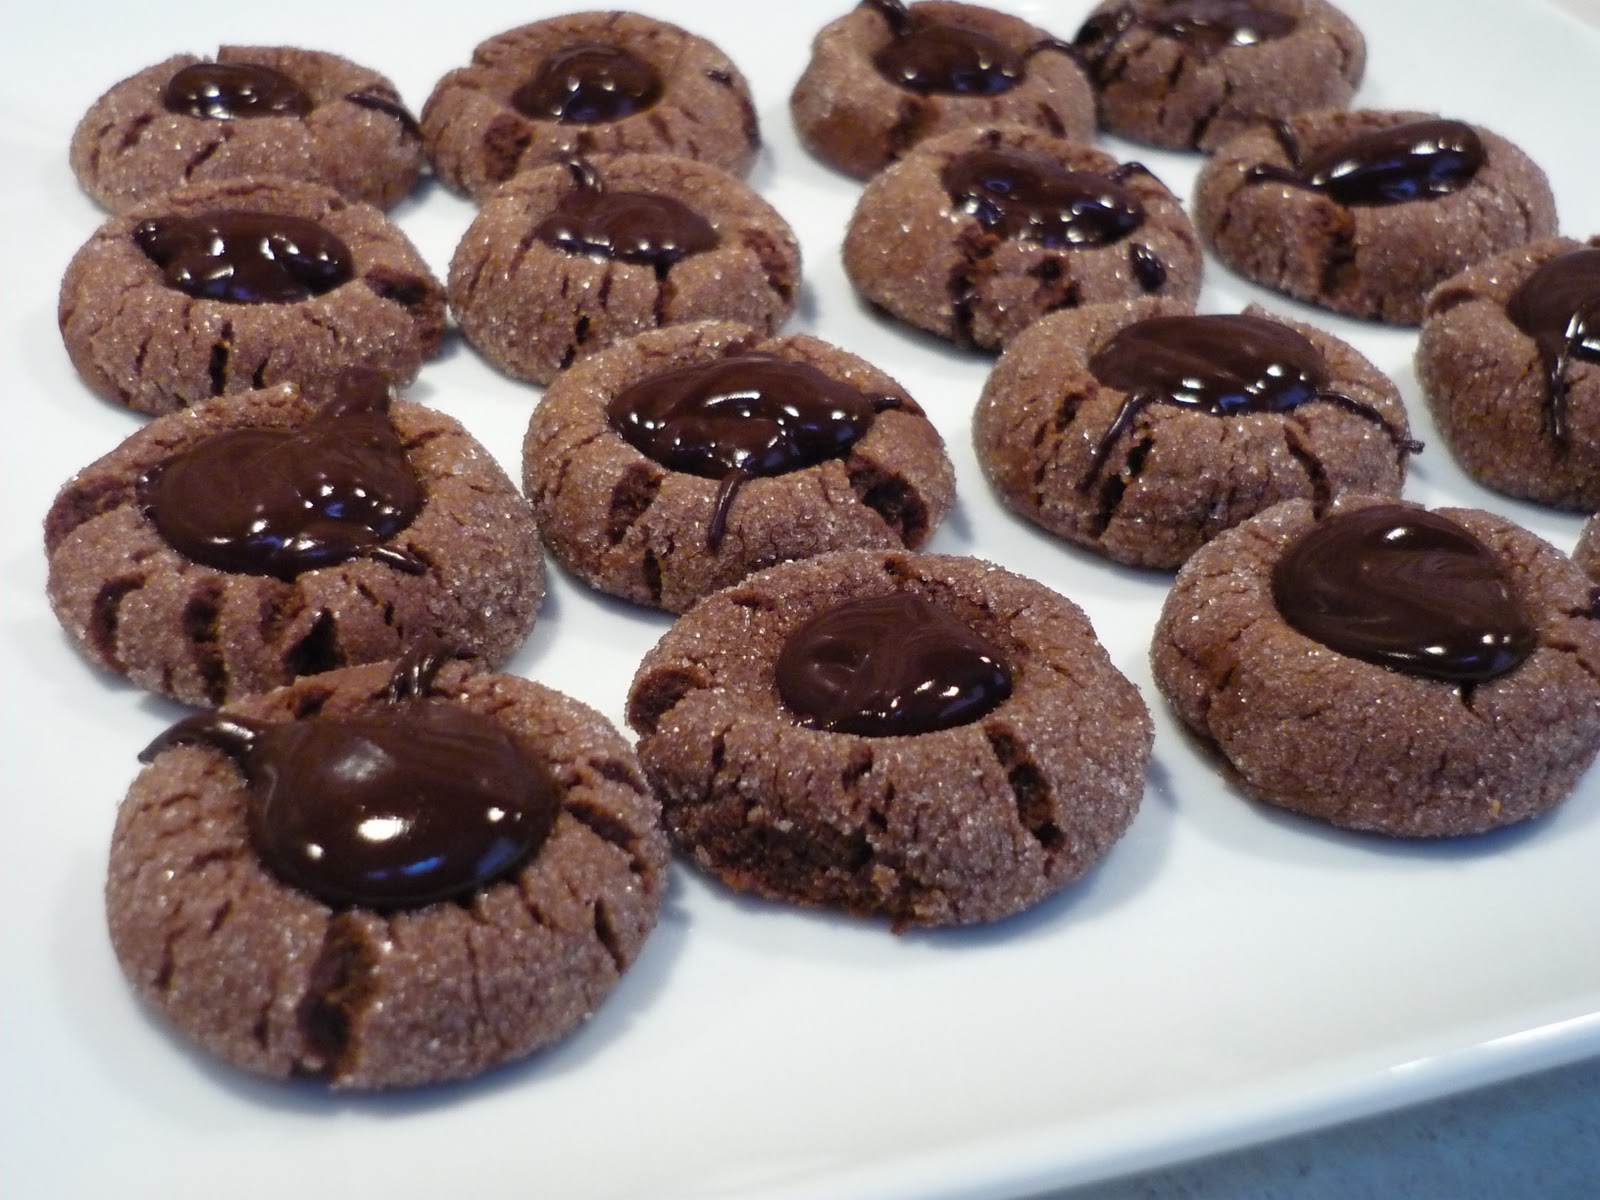 Kathy's Kitchen: Chocolate Peppermint Thumbprint Cookies